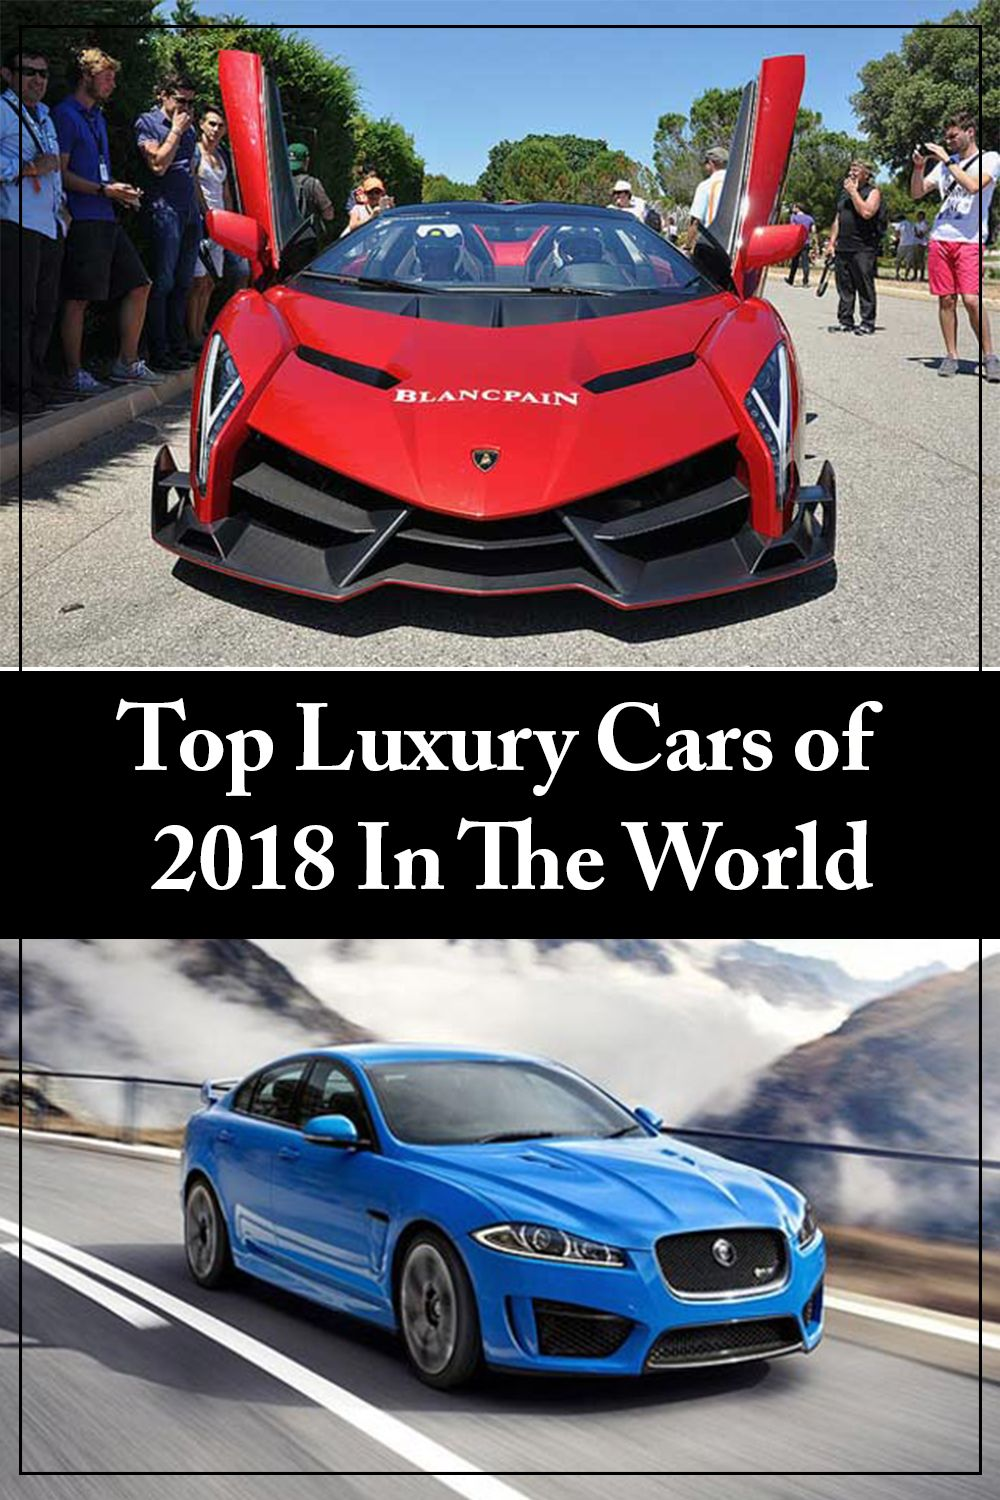 Luxury Cars Of 2018 In The World In 2020 Top Luxury Cars Luxury Cars Top Cars